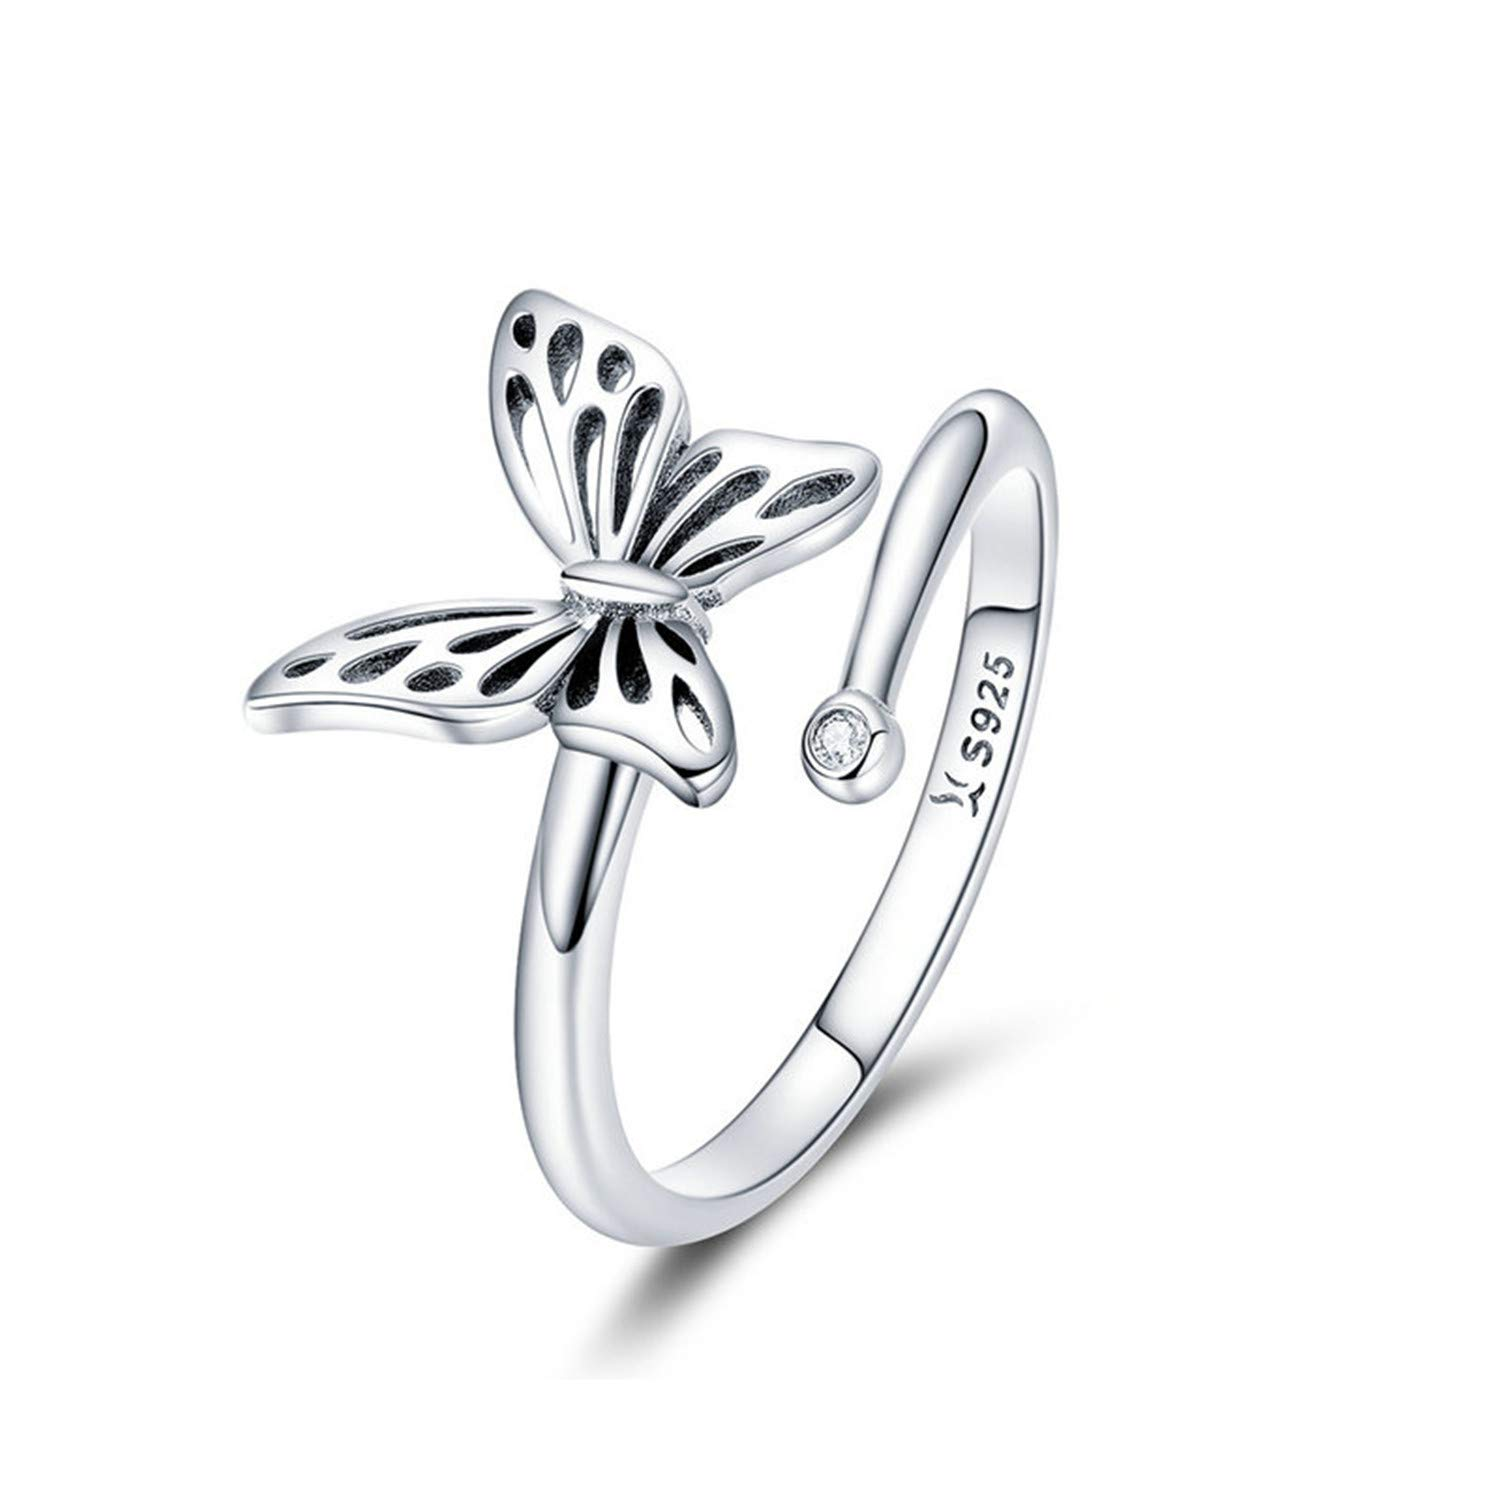 JITALFASH Finger Ring Sterling Silver Vintage Style Leaves Clear CZ Adjustable Rings Women S Jewelry Gift